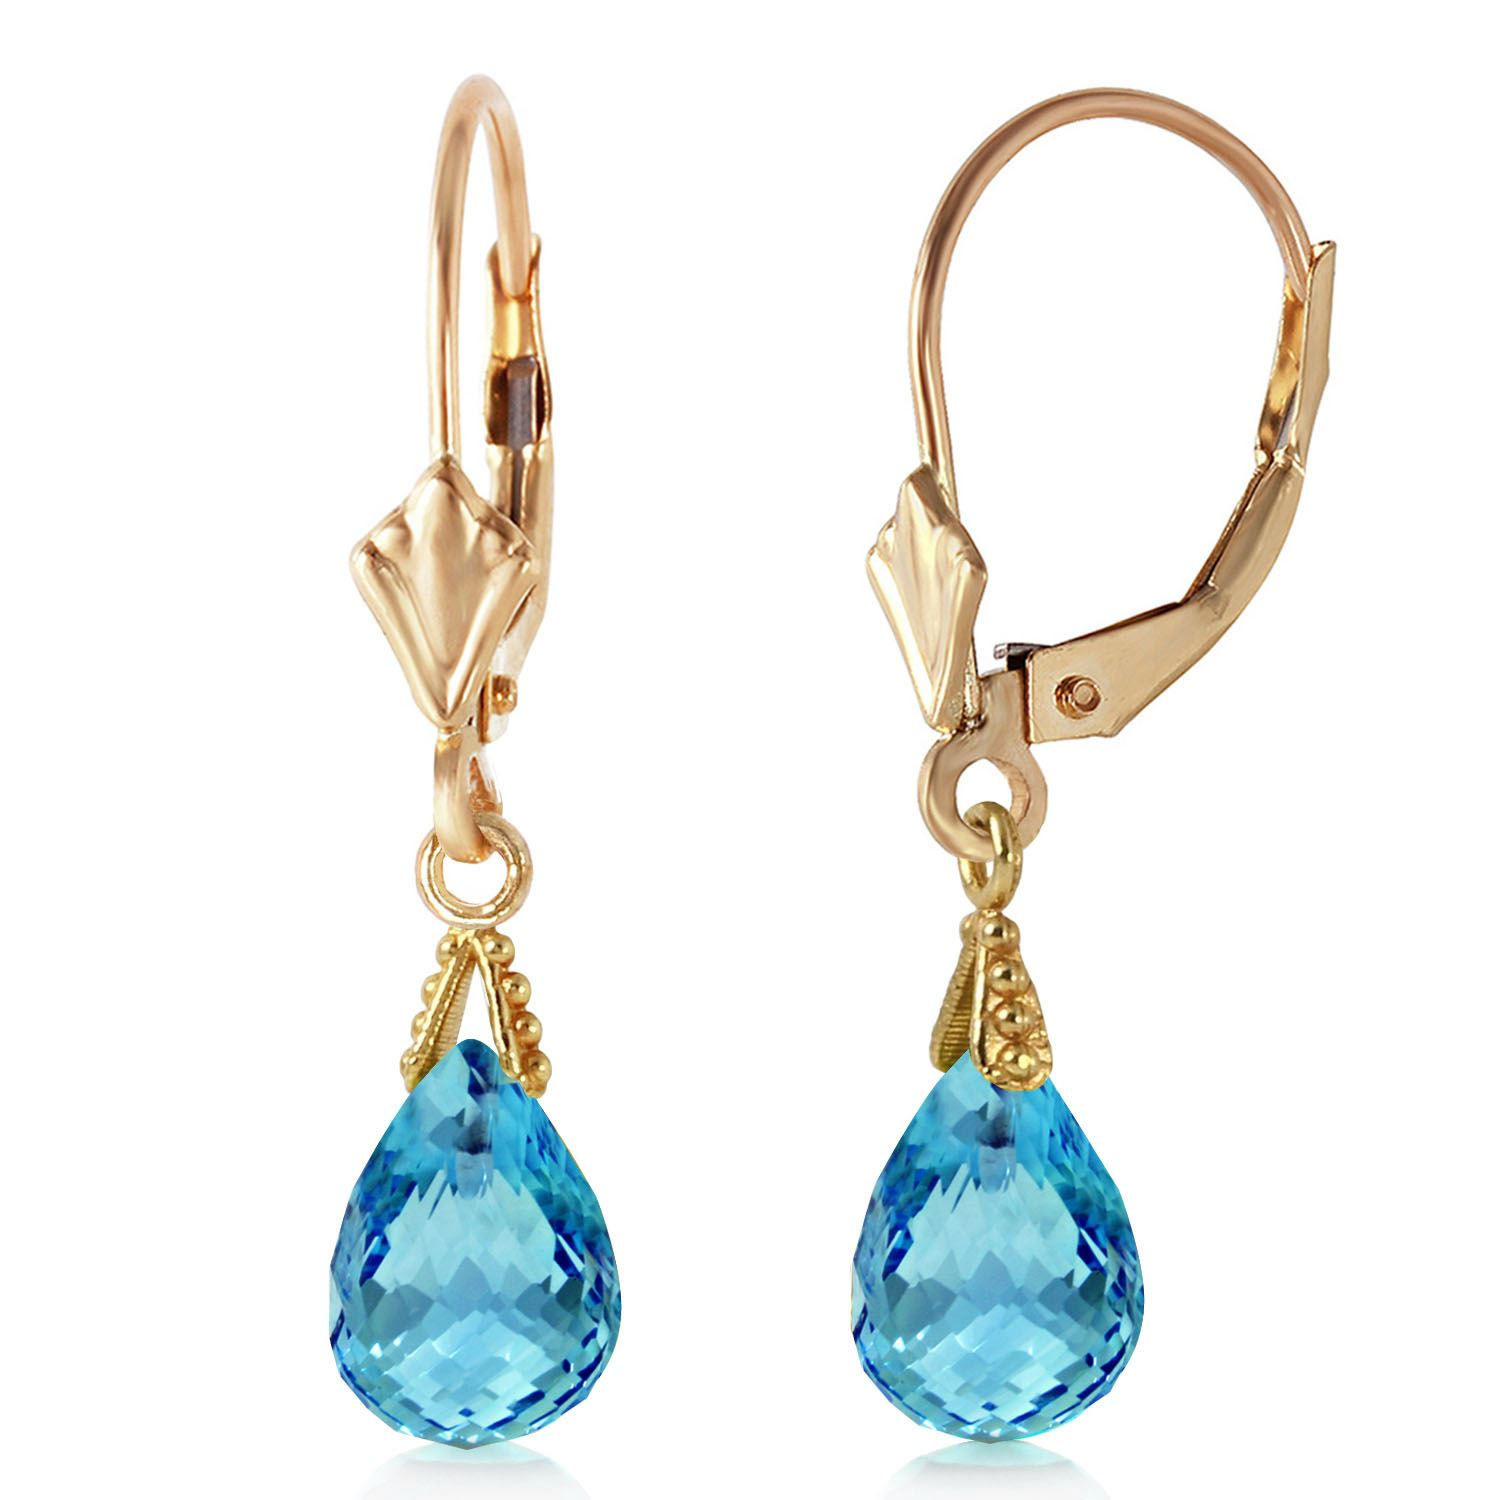 Alarri 4 5 Carat 14k Solid Gold Leverback Earrings Briolette Blue Topaz